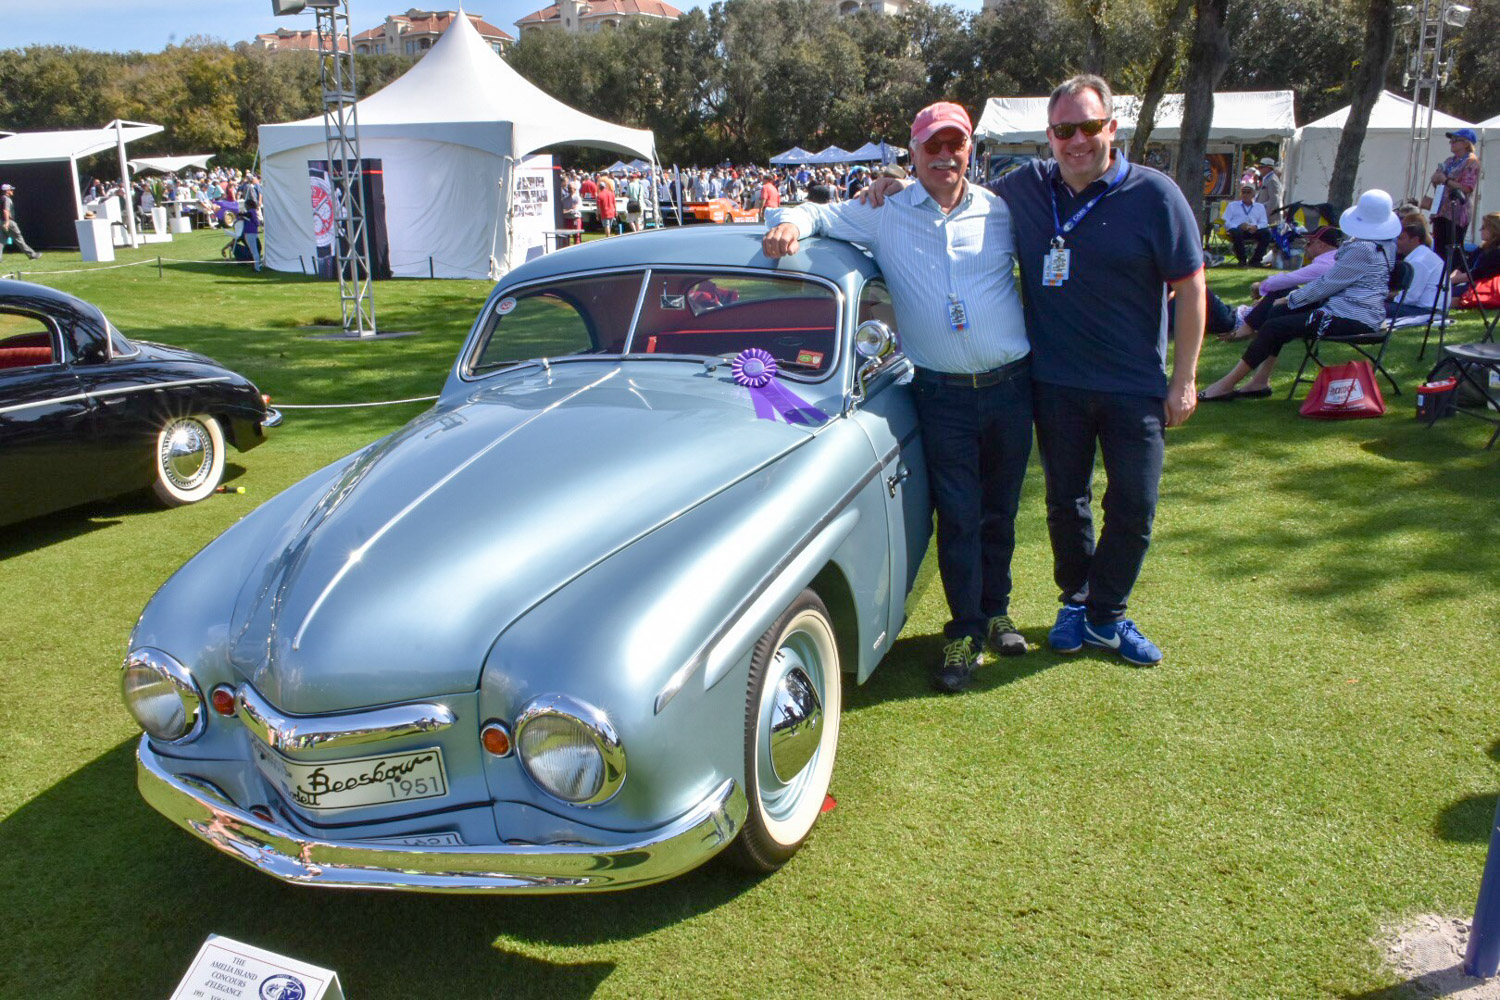 1951 Rometsch Beeskow Coupe with owner